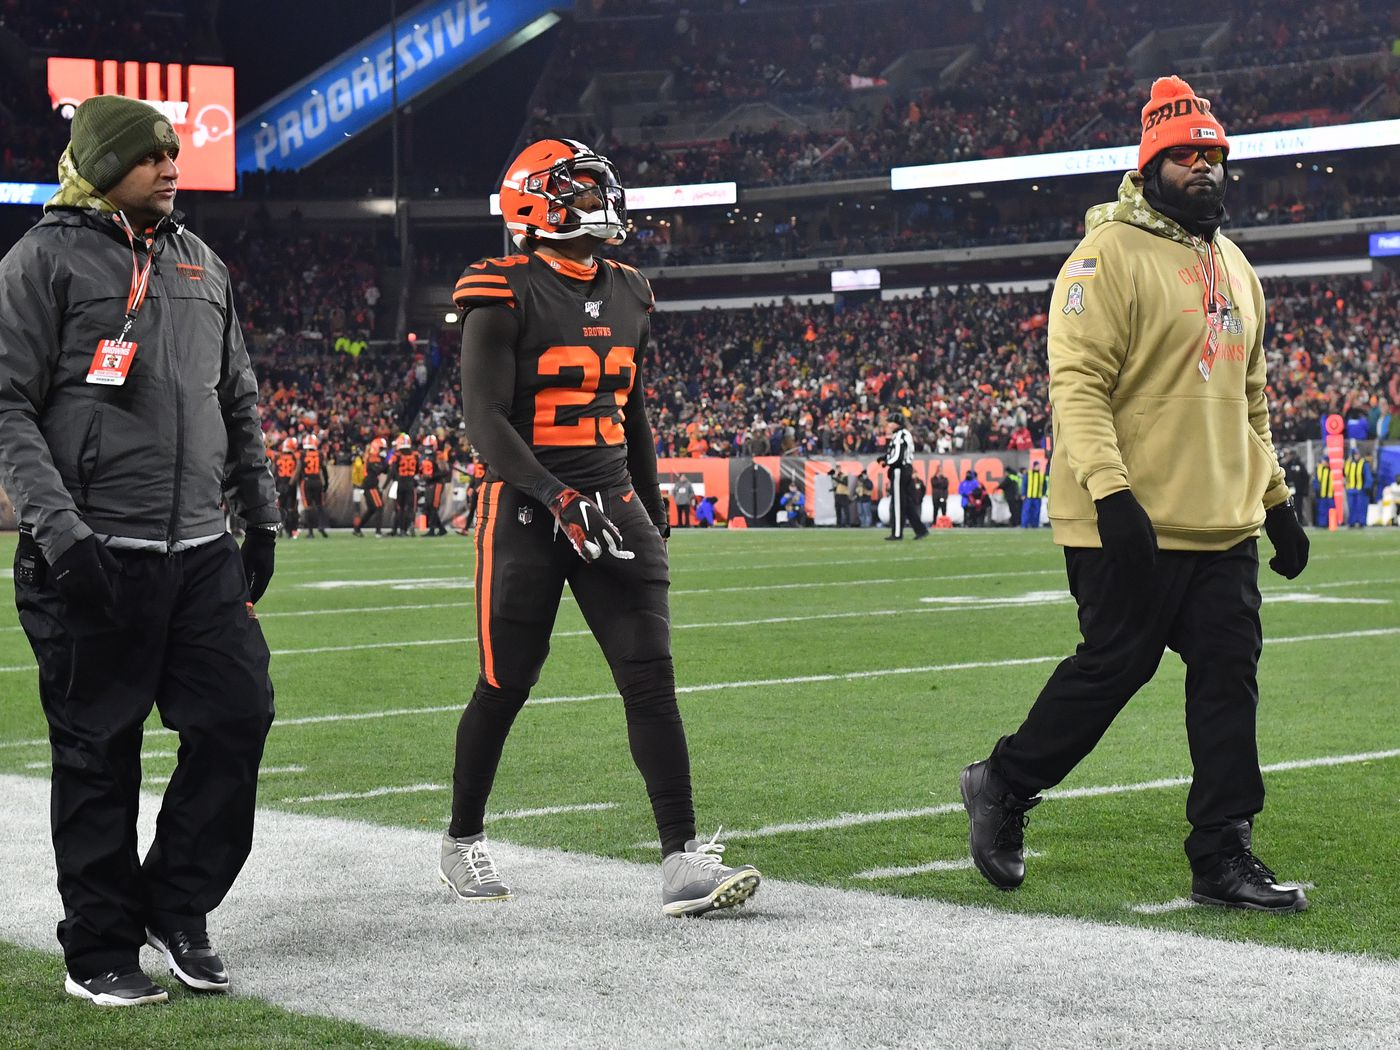 The Nfl Issues Fines From The Steelers Vs Browns Game